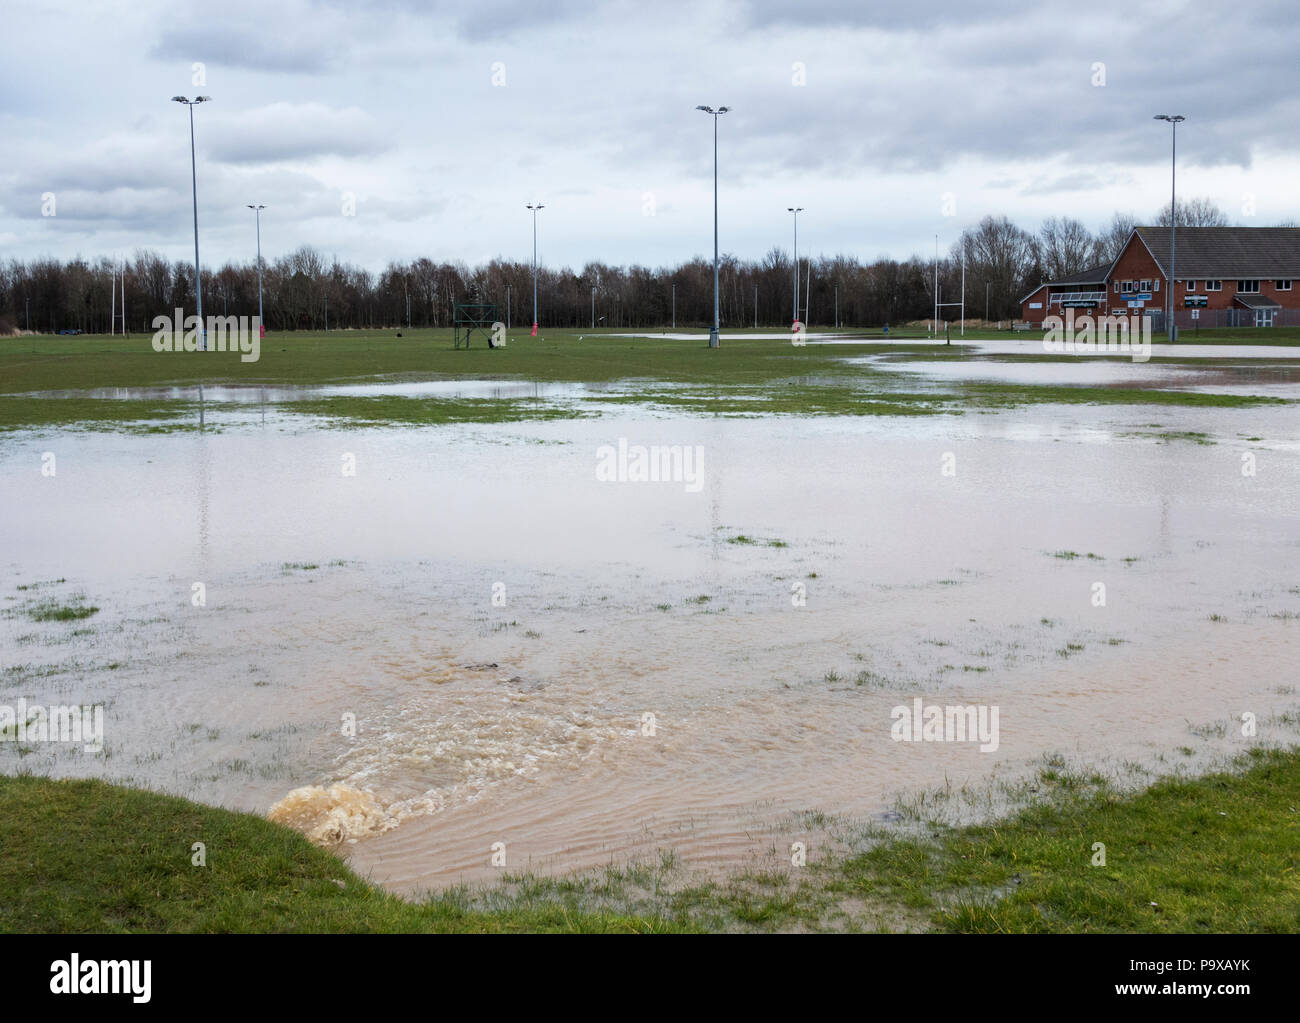 Burst water pipe flooding rugby club pitches in north east England. UK - Stock Image